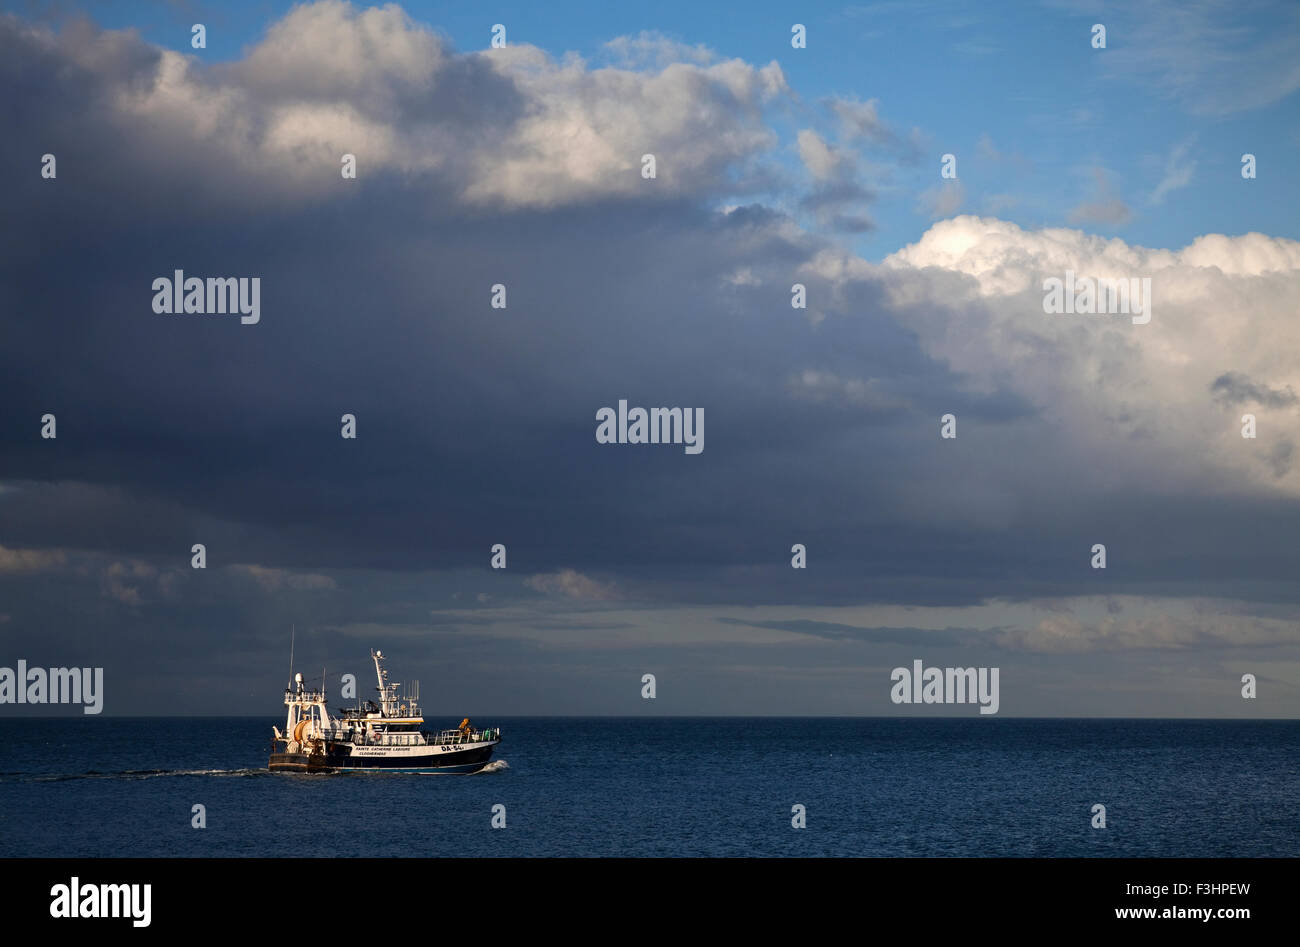 Fishing boat in the Irish Sea,  Off Clogher Head, County Louth, Ireland - Stock Image